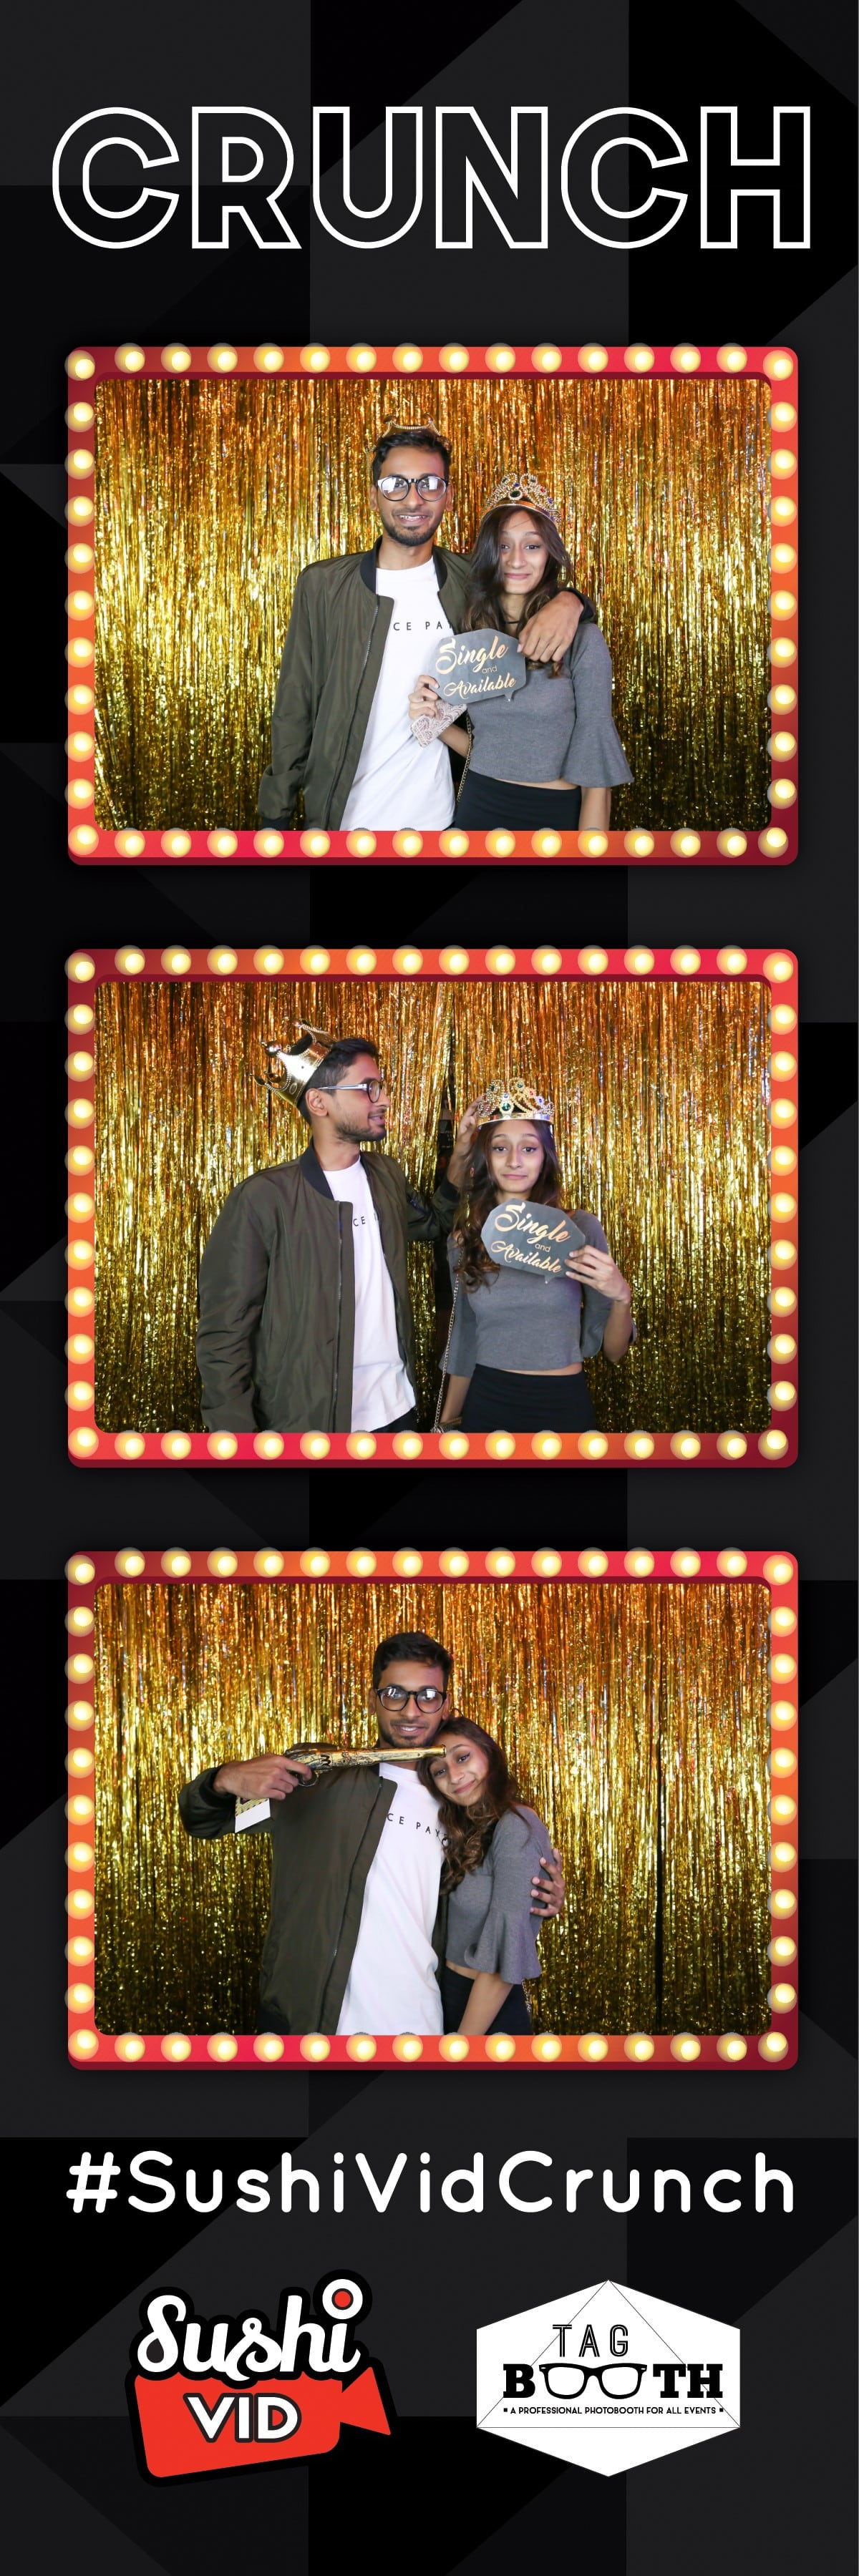 Sushivid+crunch+tagbooth1+17